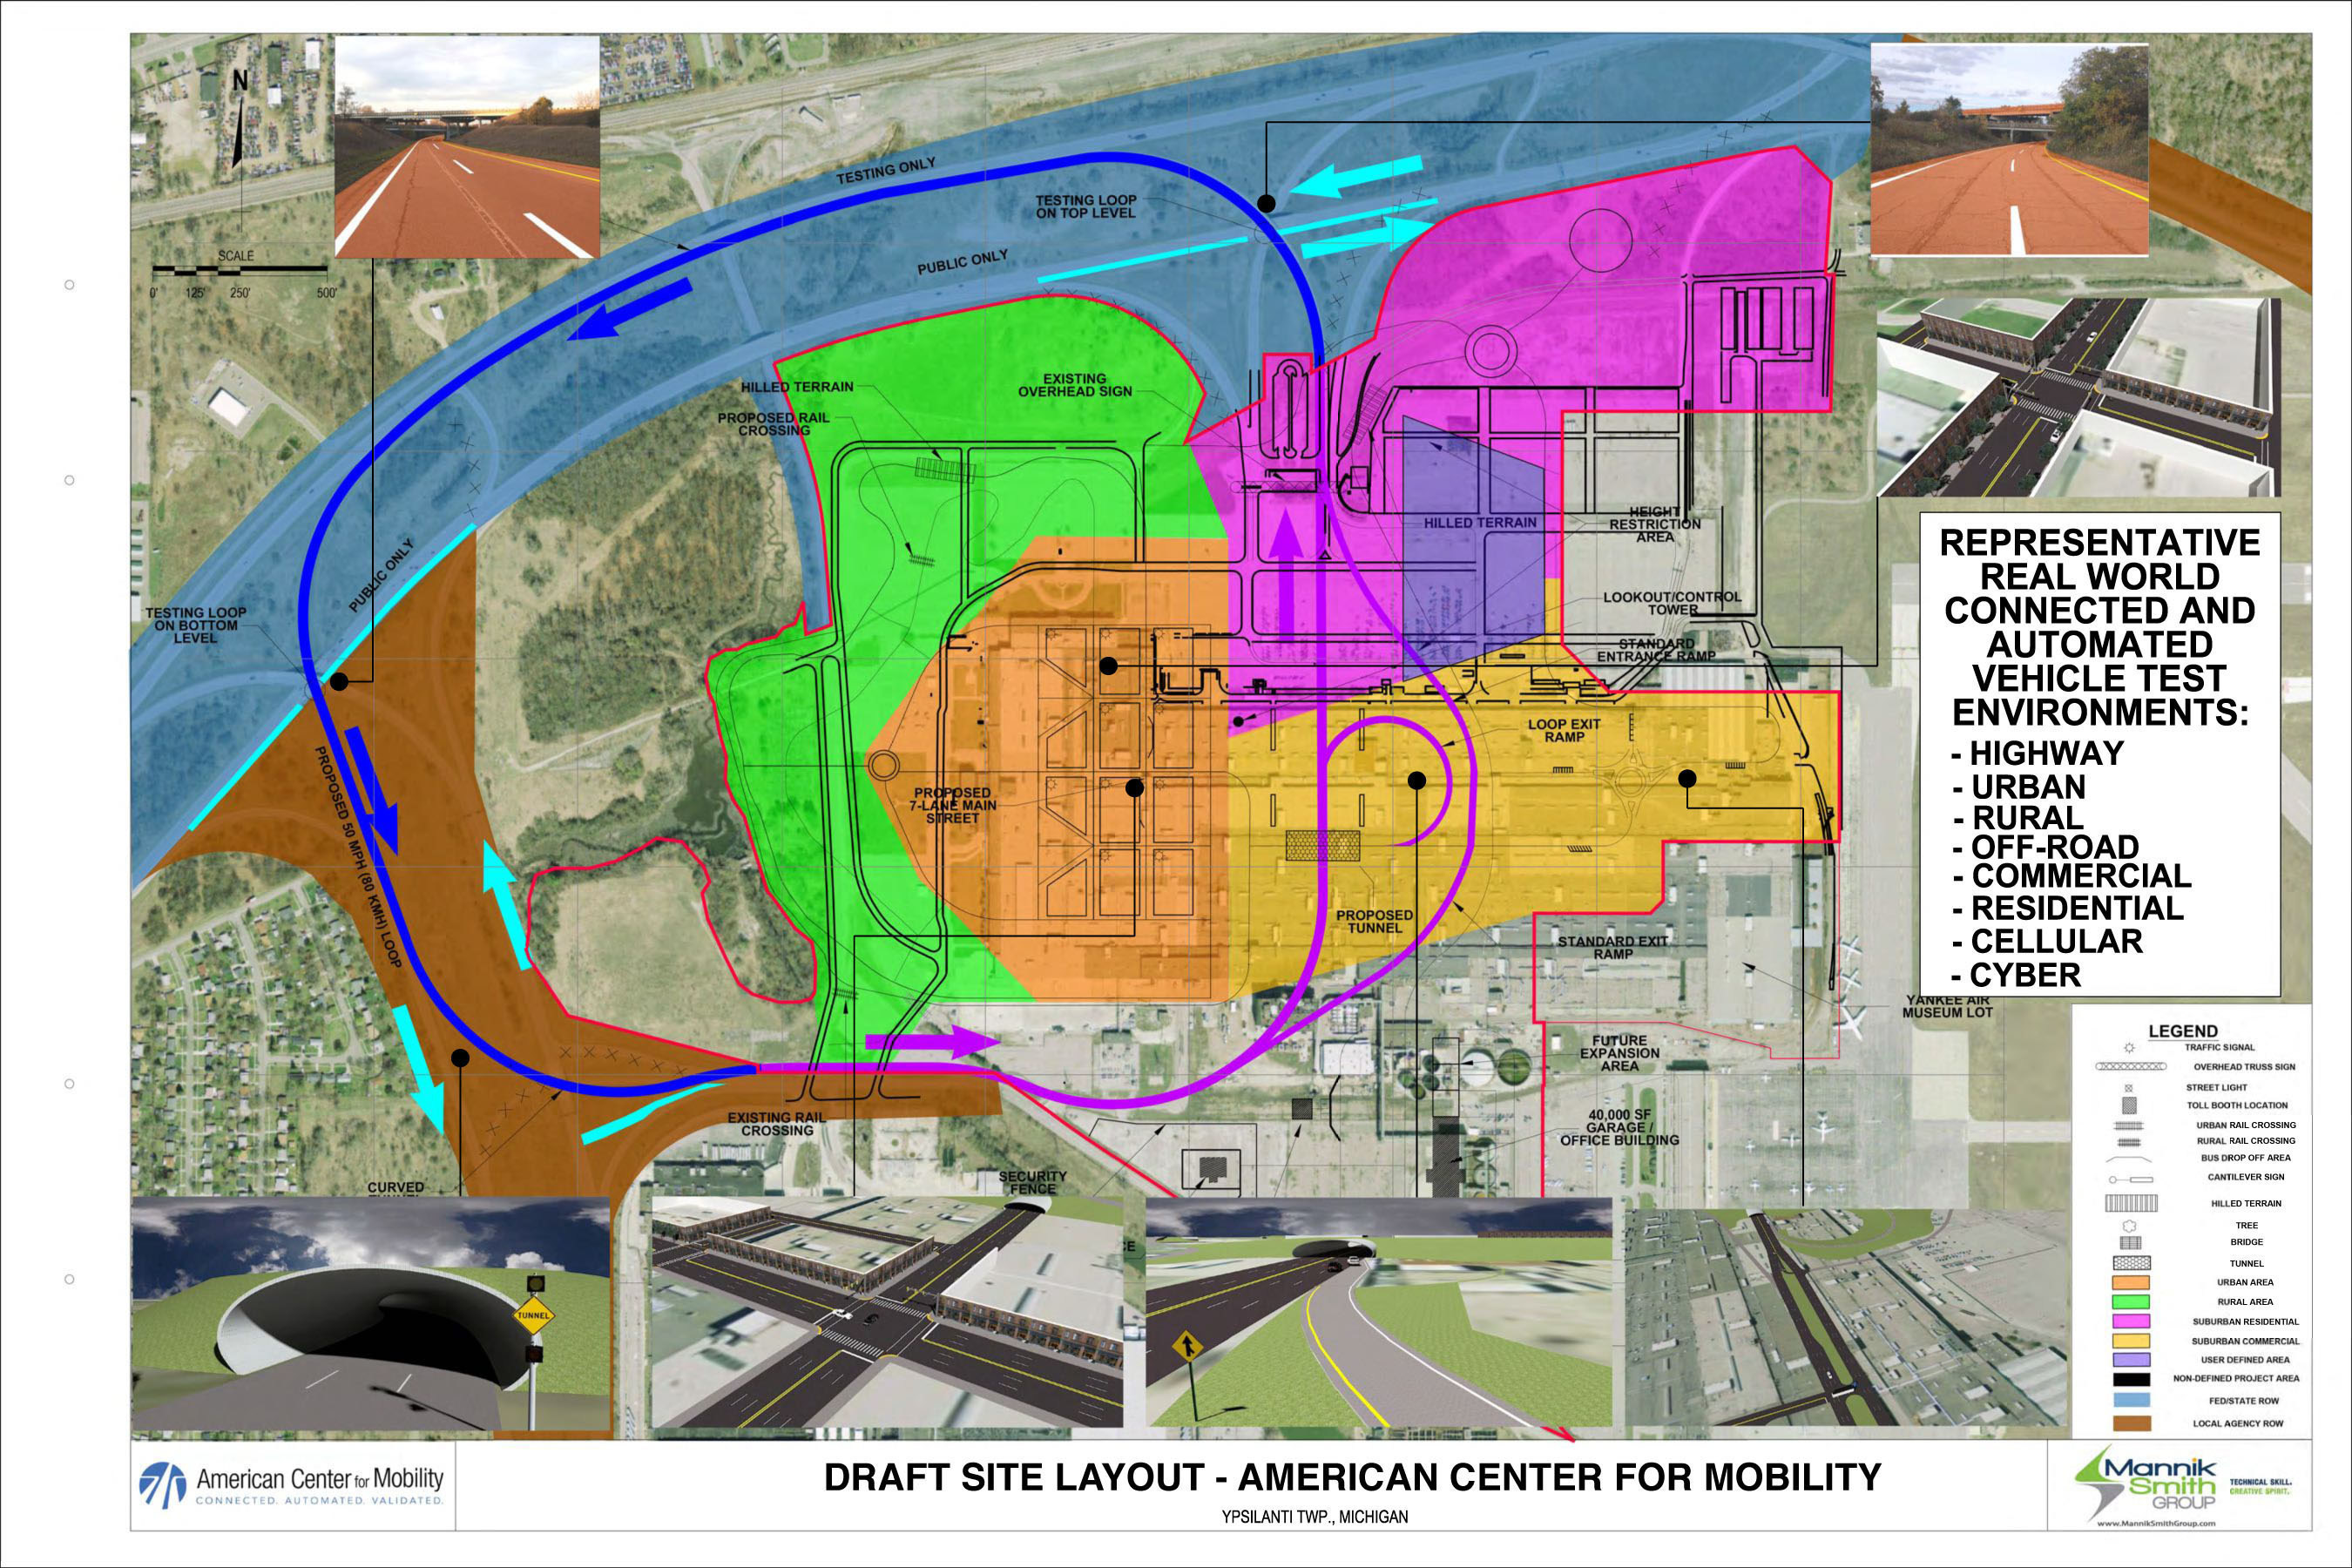 The 335-acre historic Willow Run site in Ypsilanti Township, Michigan will be converted into state-of-the-art proving grounds and convening center for connected, automated vehicles and future mobility.  The site will be designed with real-world elements necessary for vehicle testing in various environmental settings.